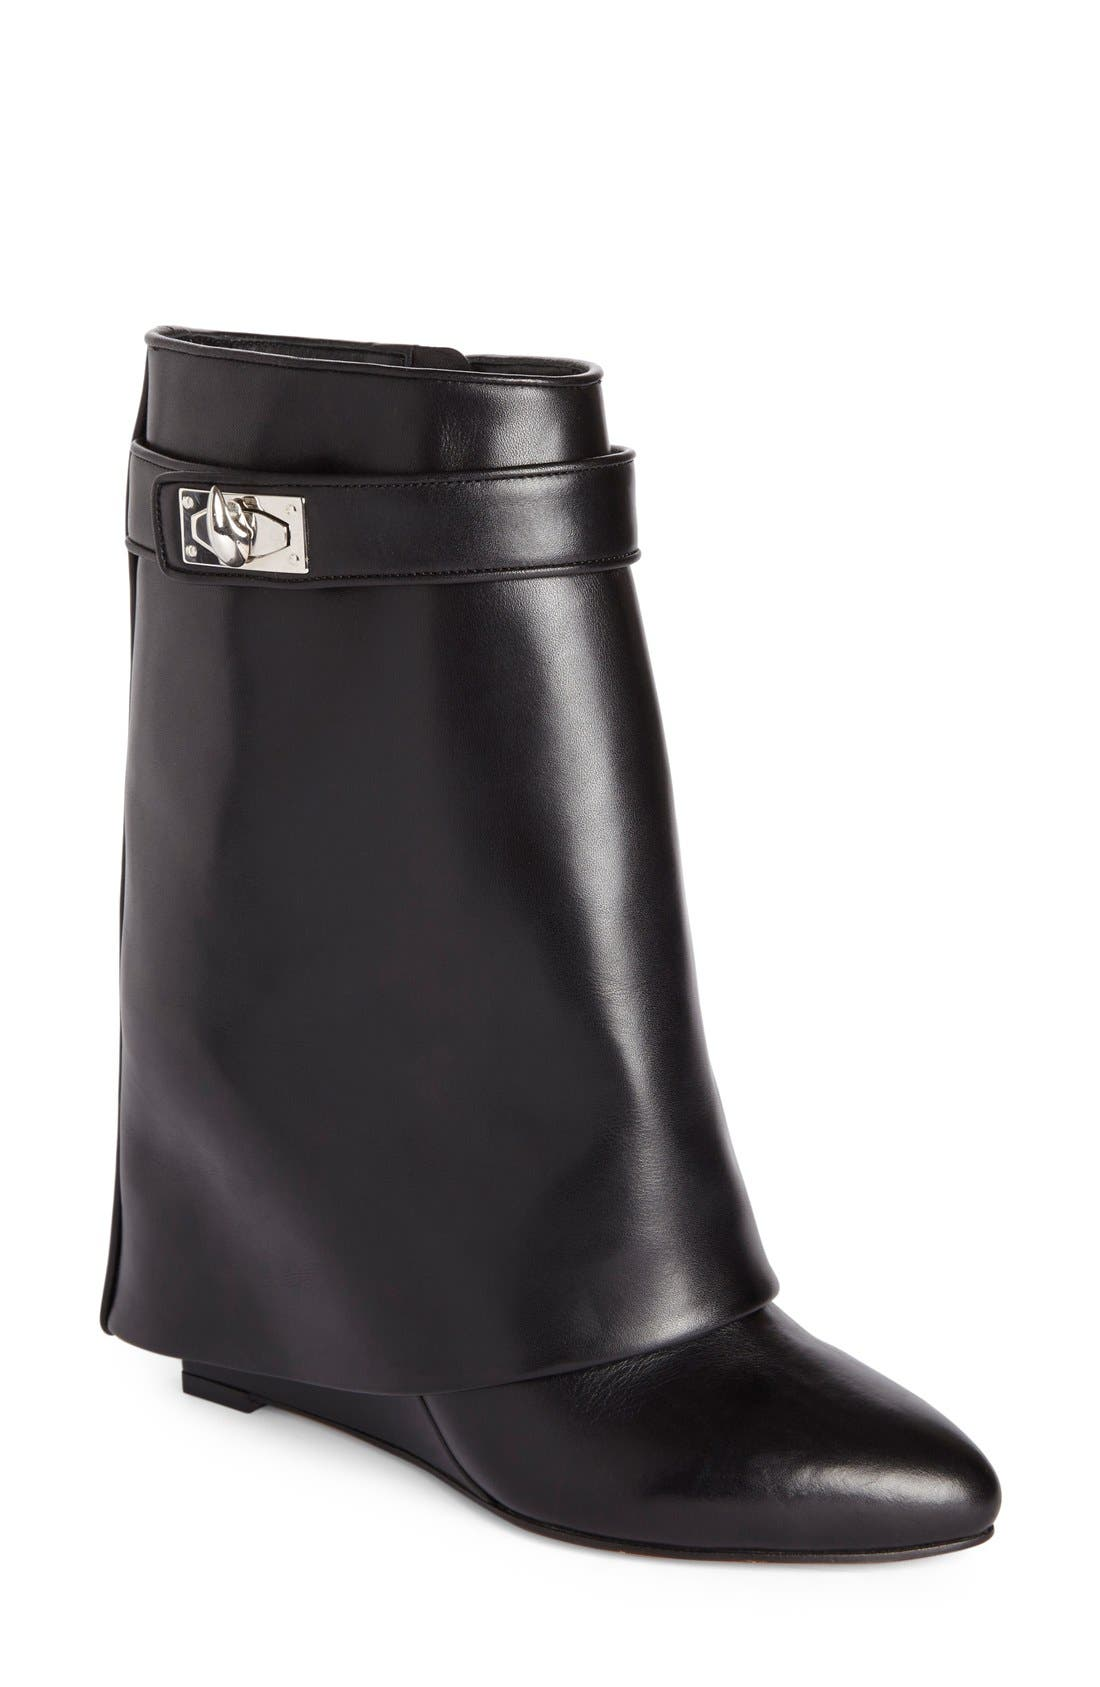 Main Image - Givenchy Shark-Tooth Pant-Leg  Bootie (Women)